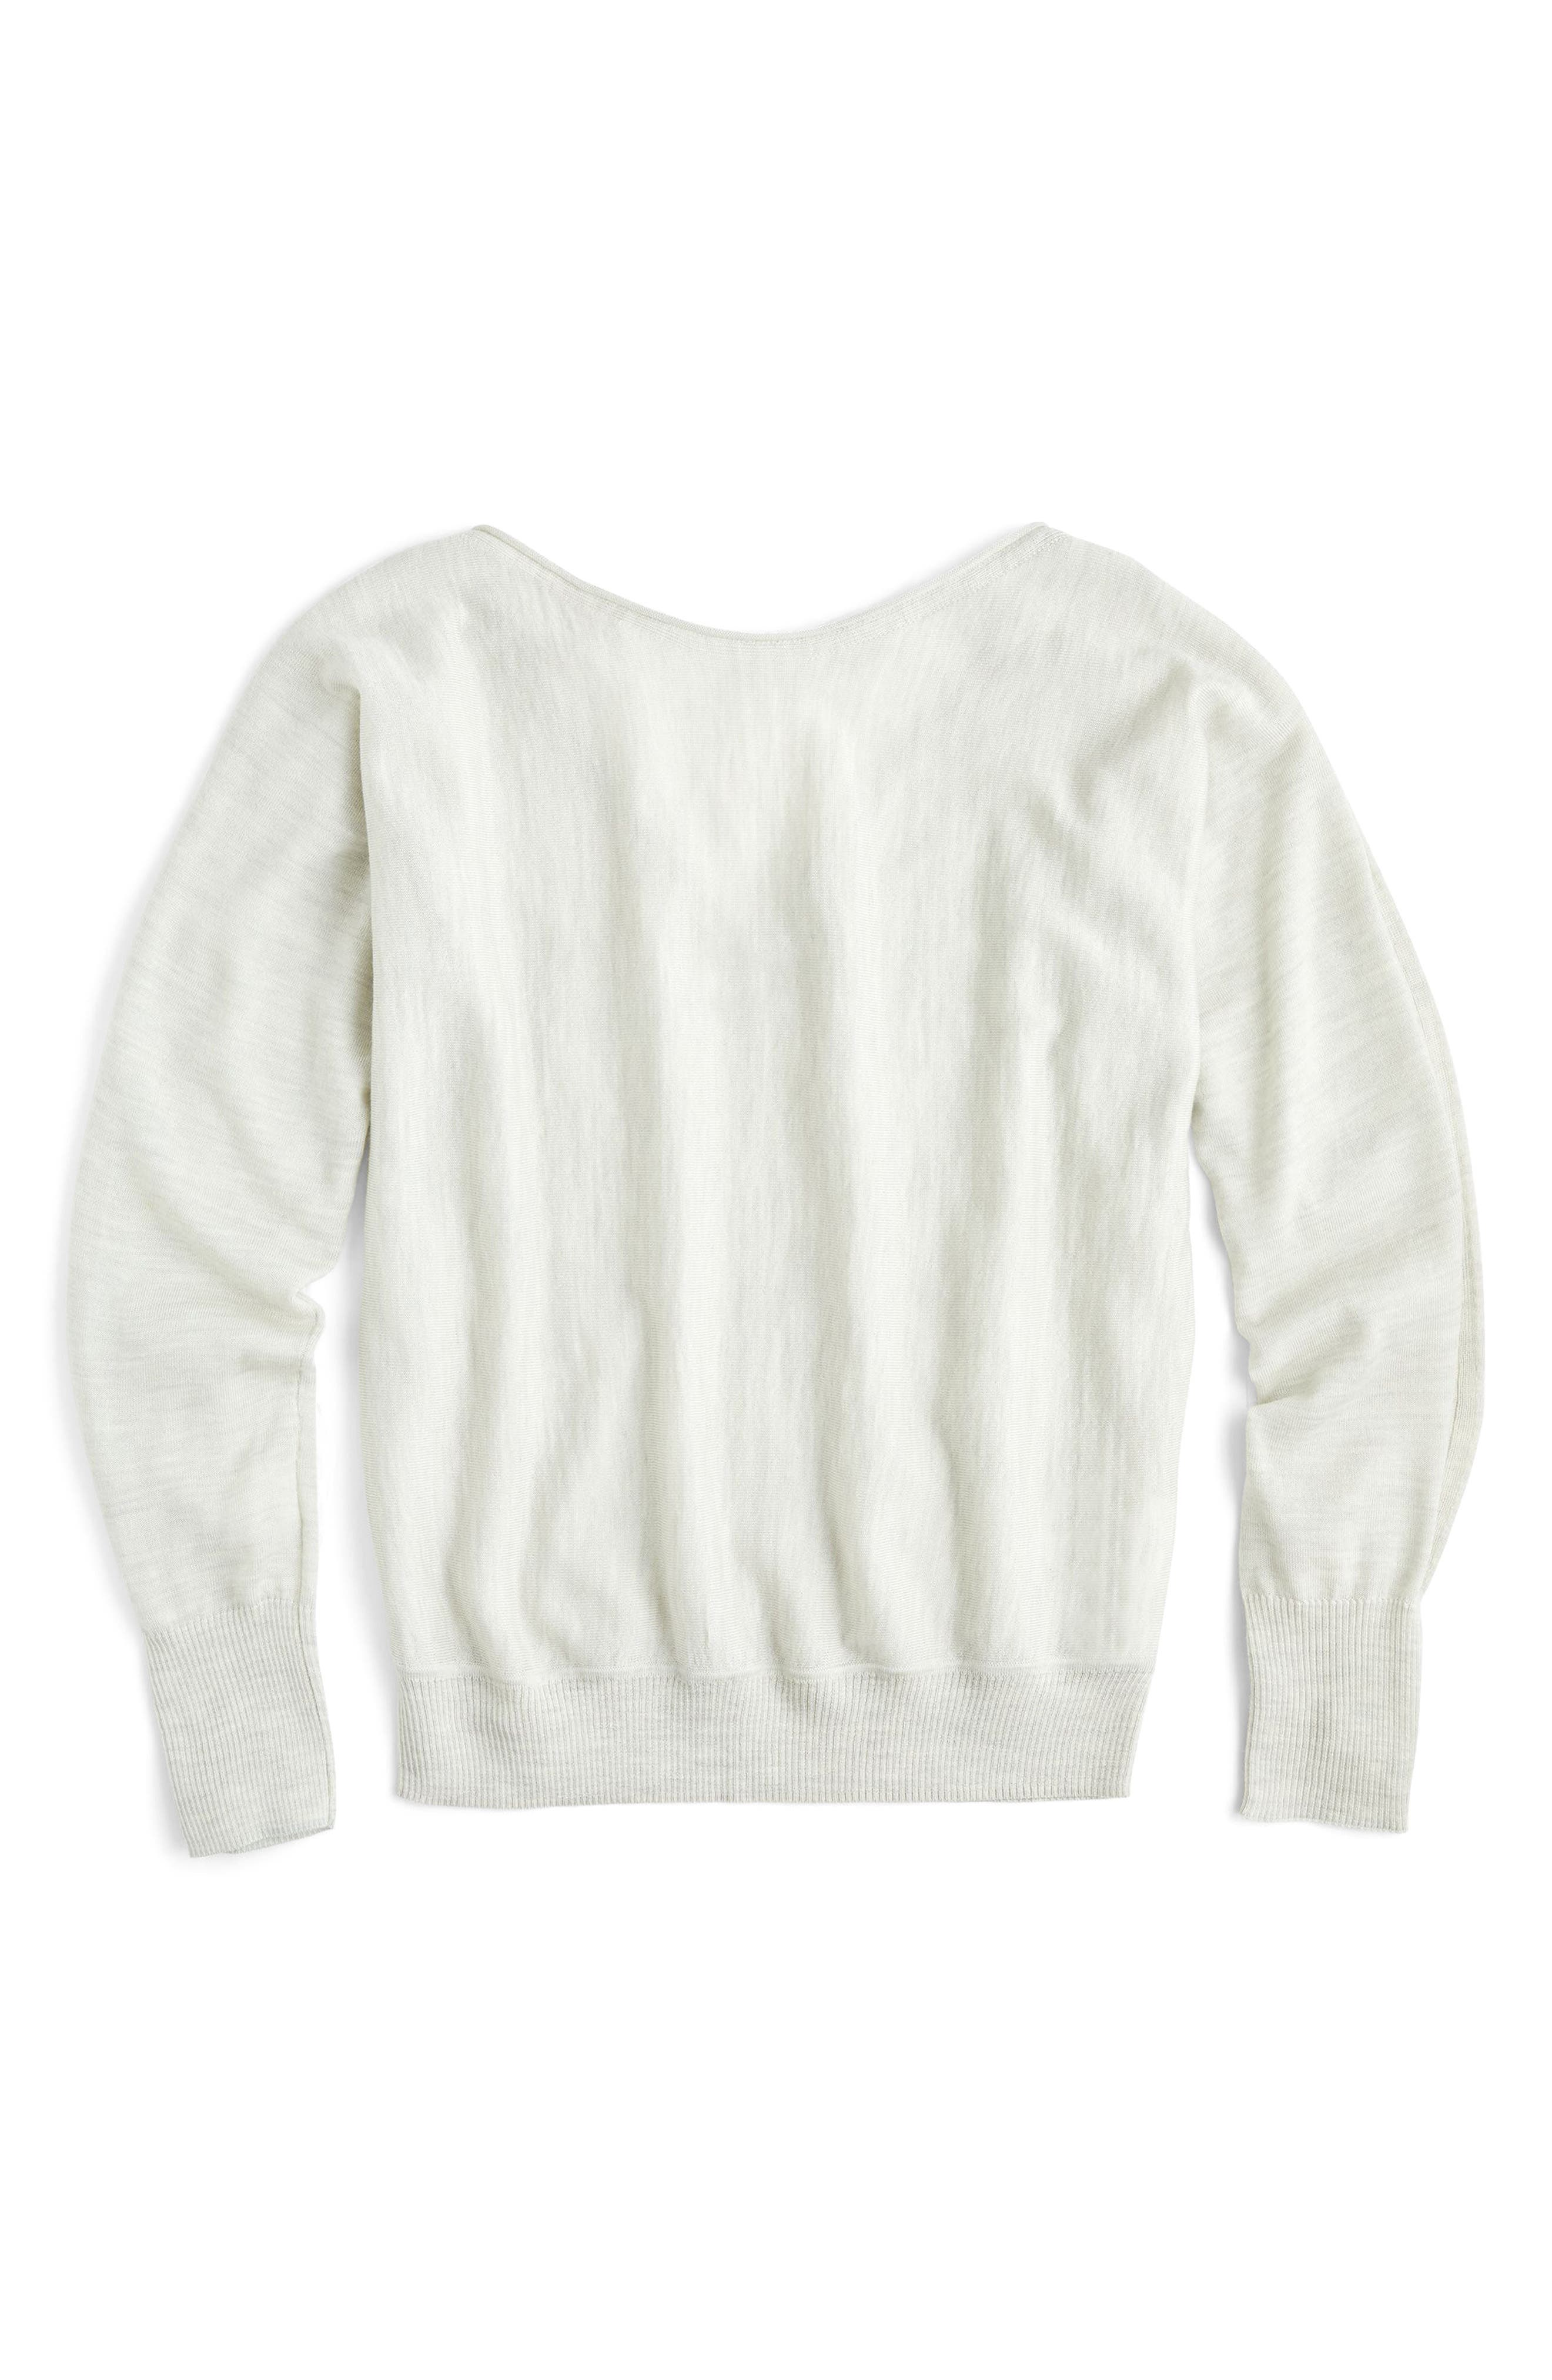 J.Crew Dolman Merino Wool V-Back Sweater